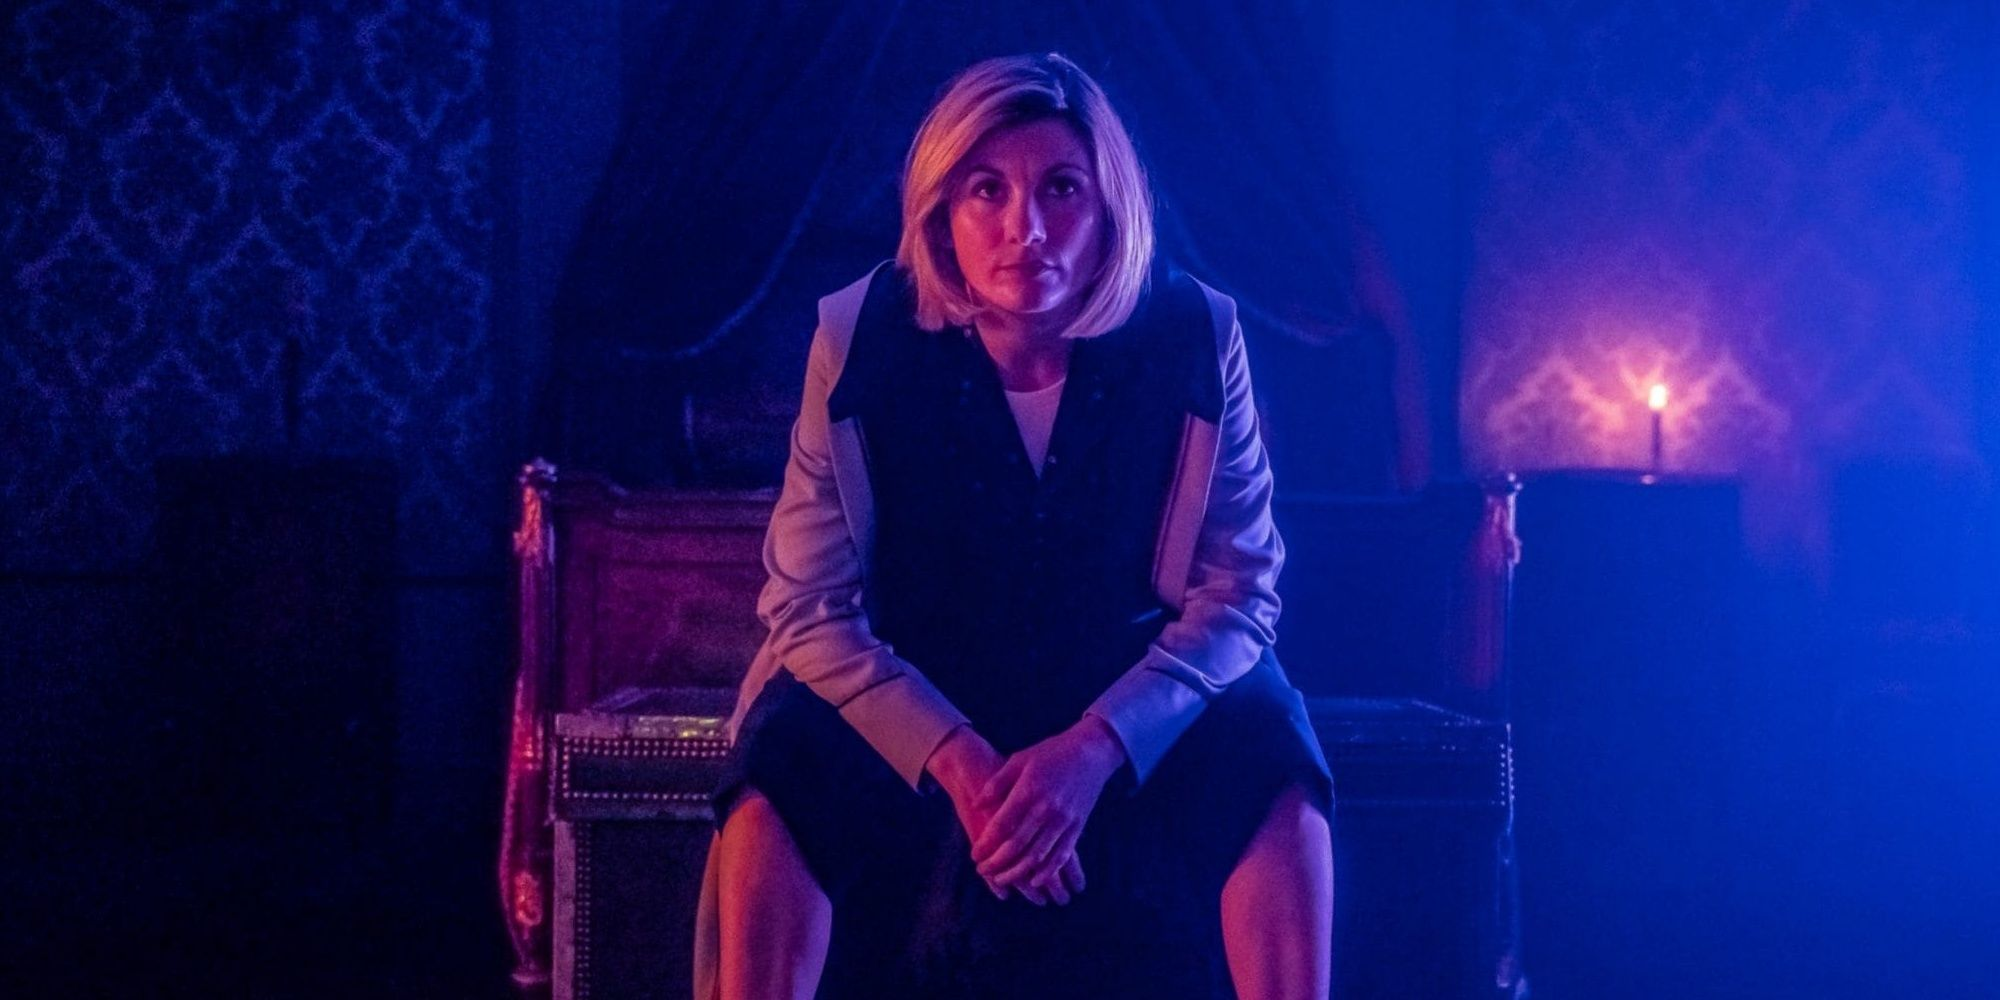 Doctor Who's Ratings Are Dropping, But Show Is in No Cancelation Danger